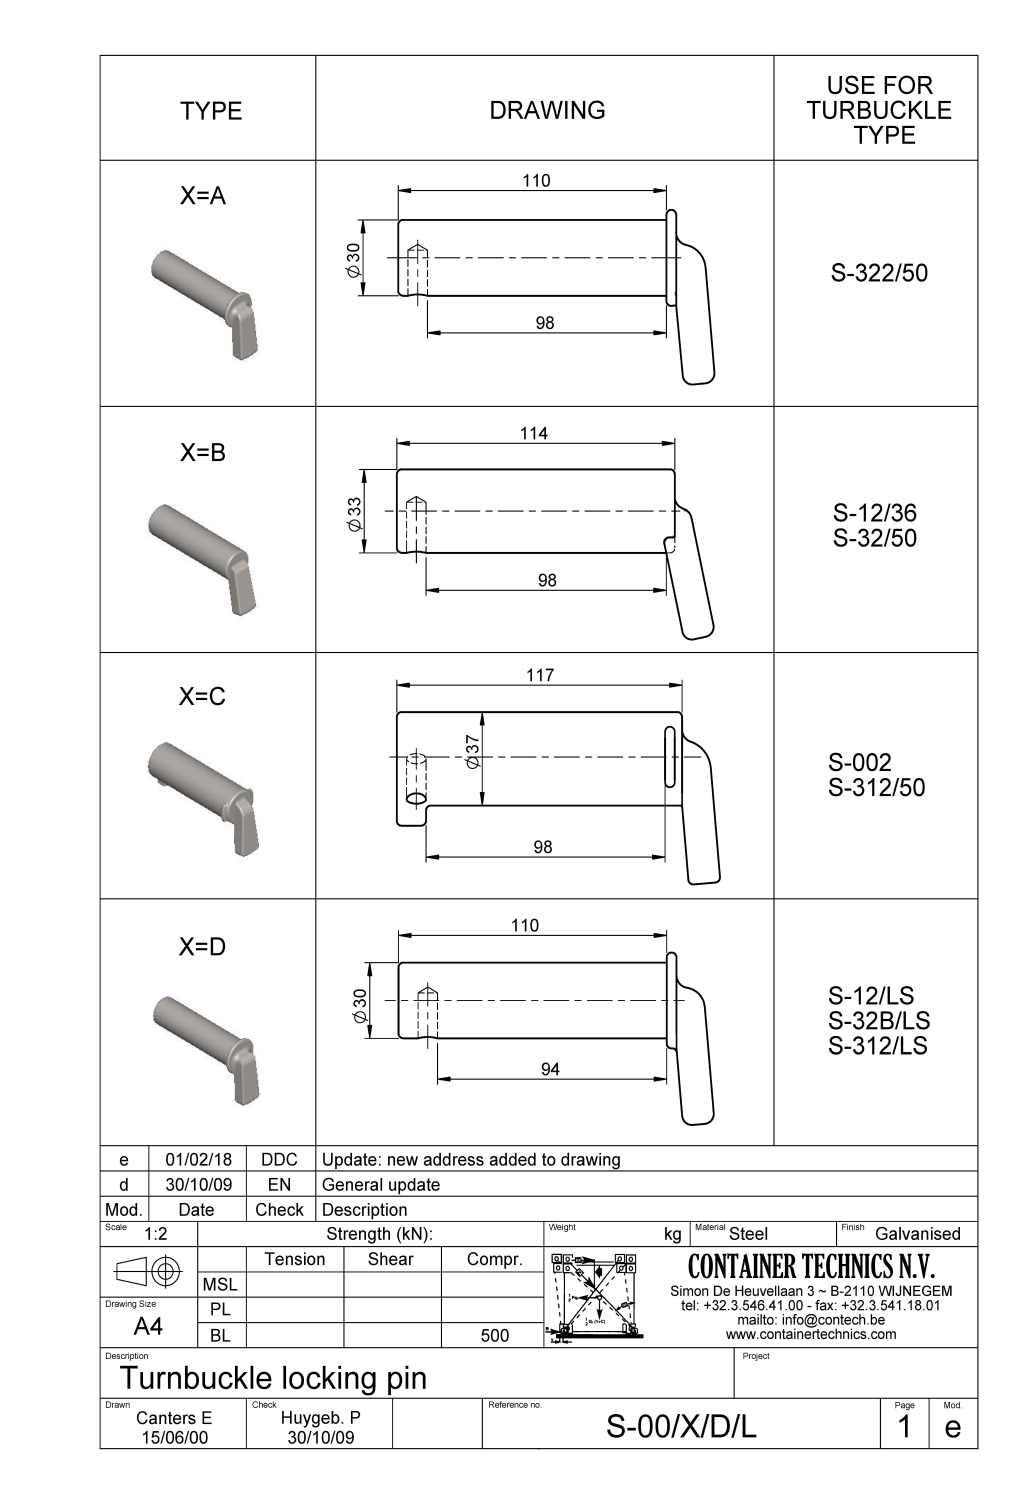 S-00 LOCKING PIN FOR TURNBUCKLE